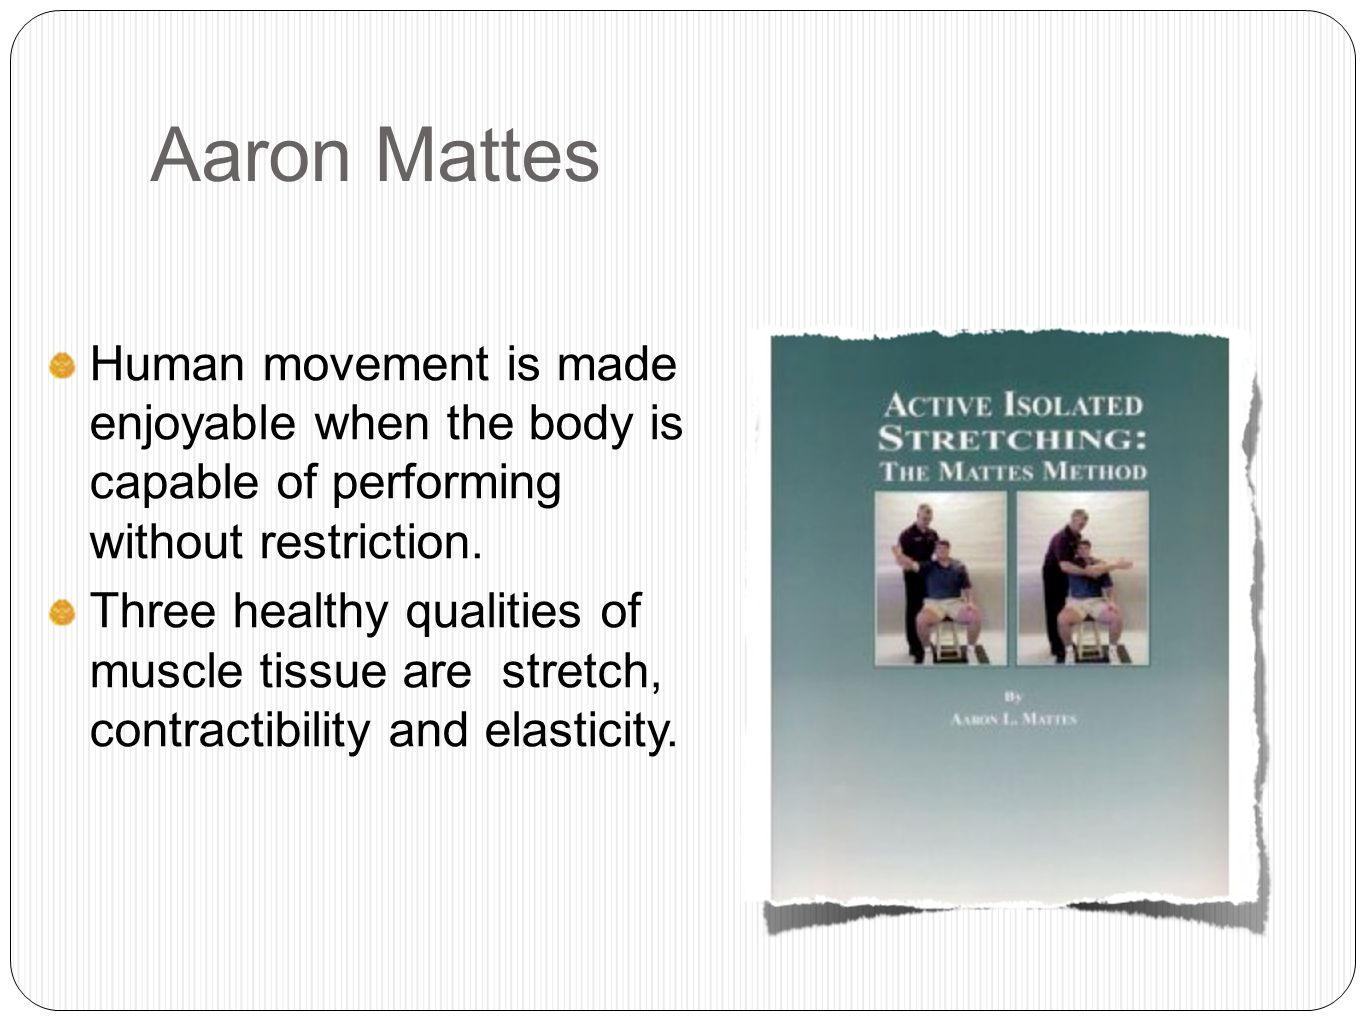 Aaron Mattes Human movement is made enjoyable when the body is capable of performing without restriction.